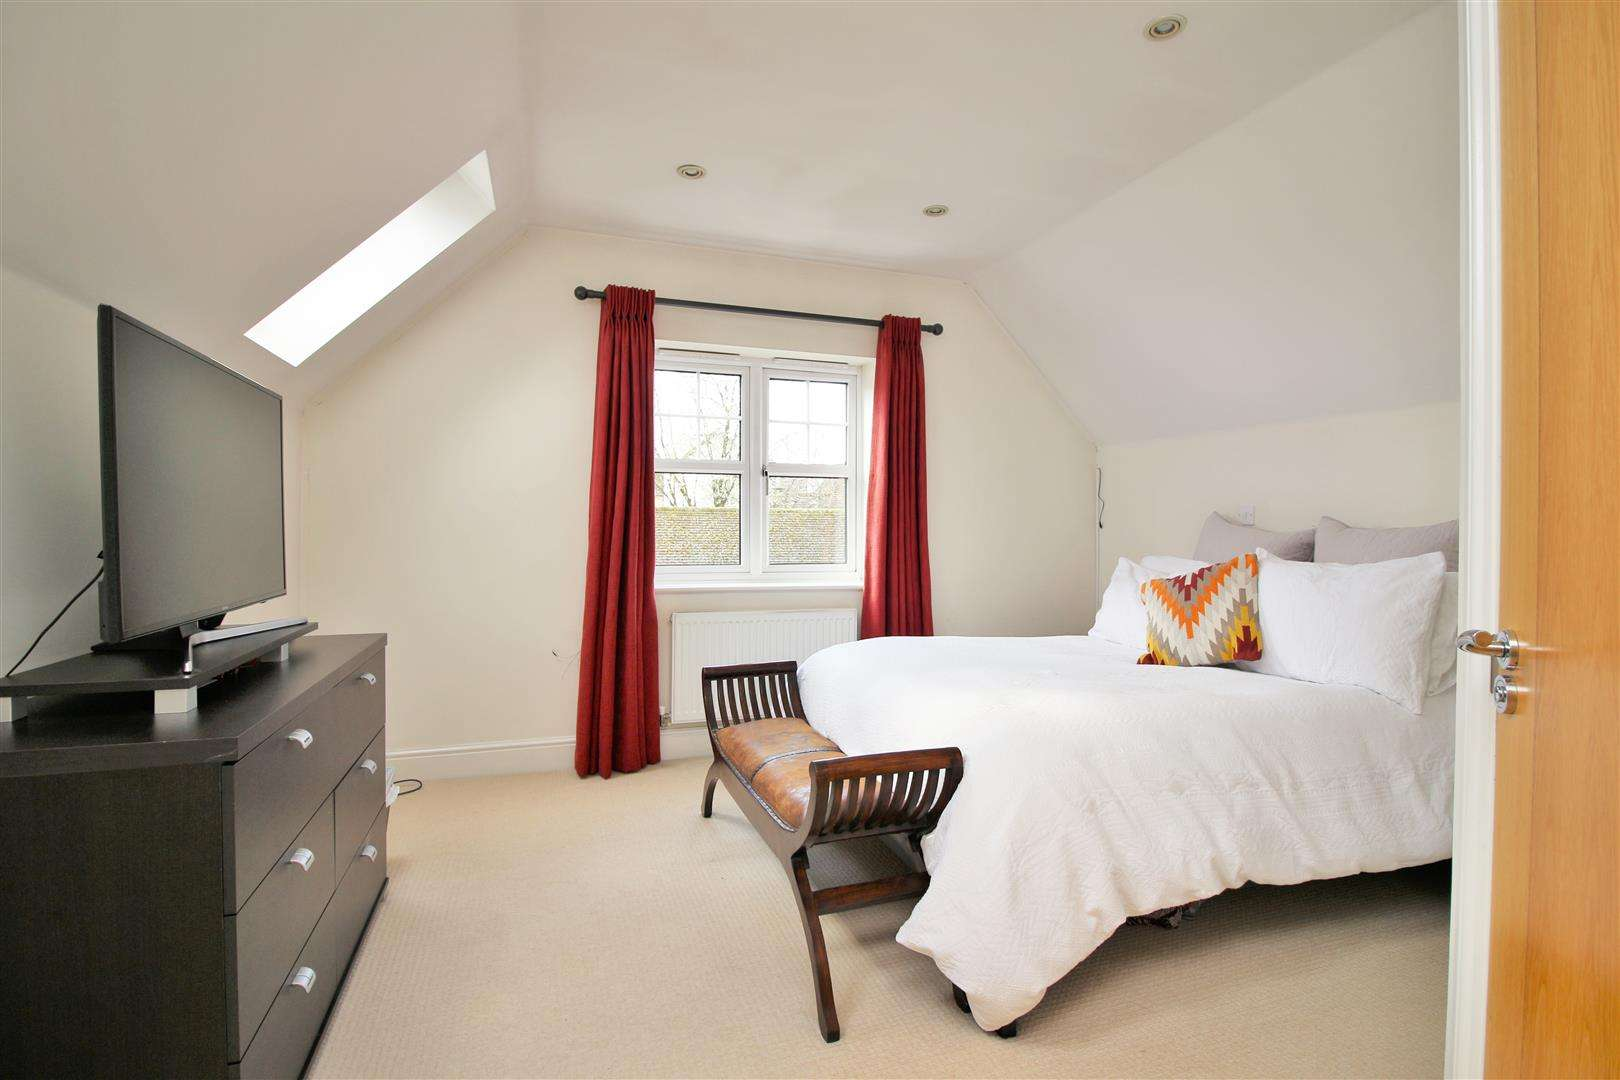 4 bed to rent in Bushey Heath - (Property Image 11)